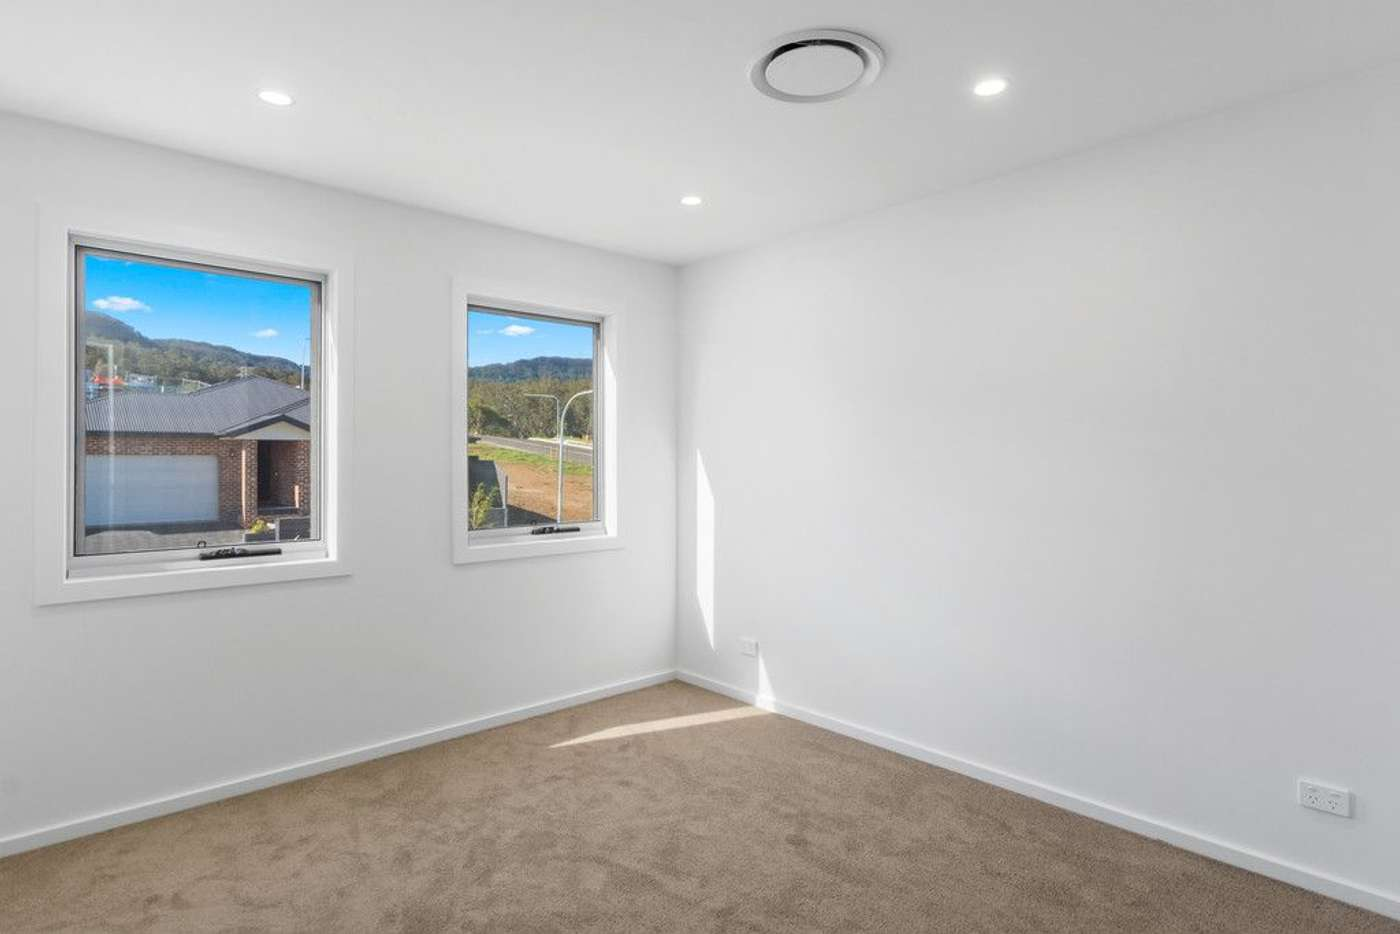 Sixth view of Homely house listing, 41A Neeson Road, Kembla Grange NSW 2526